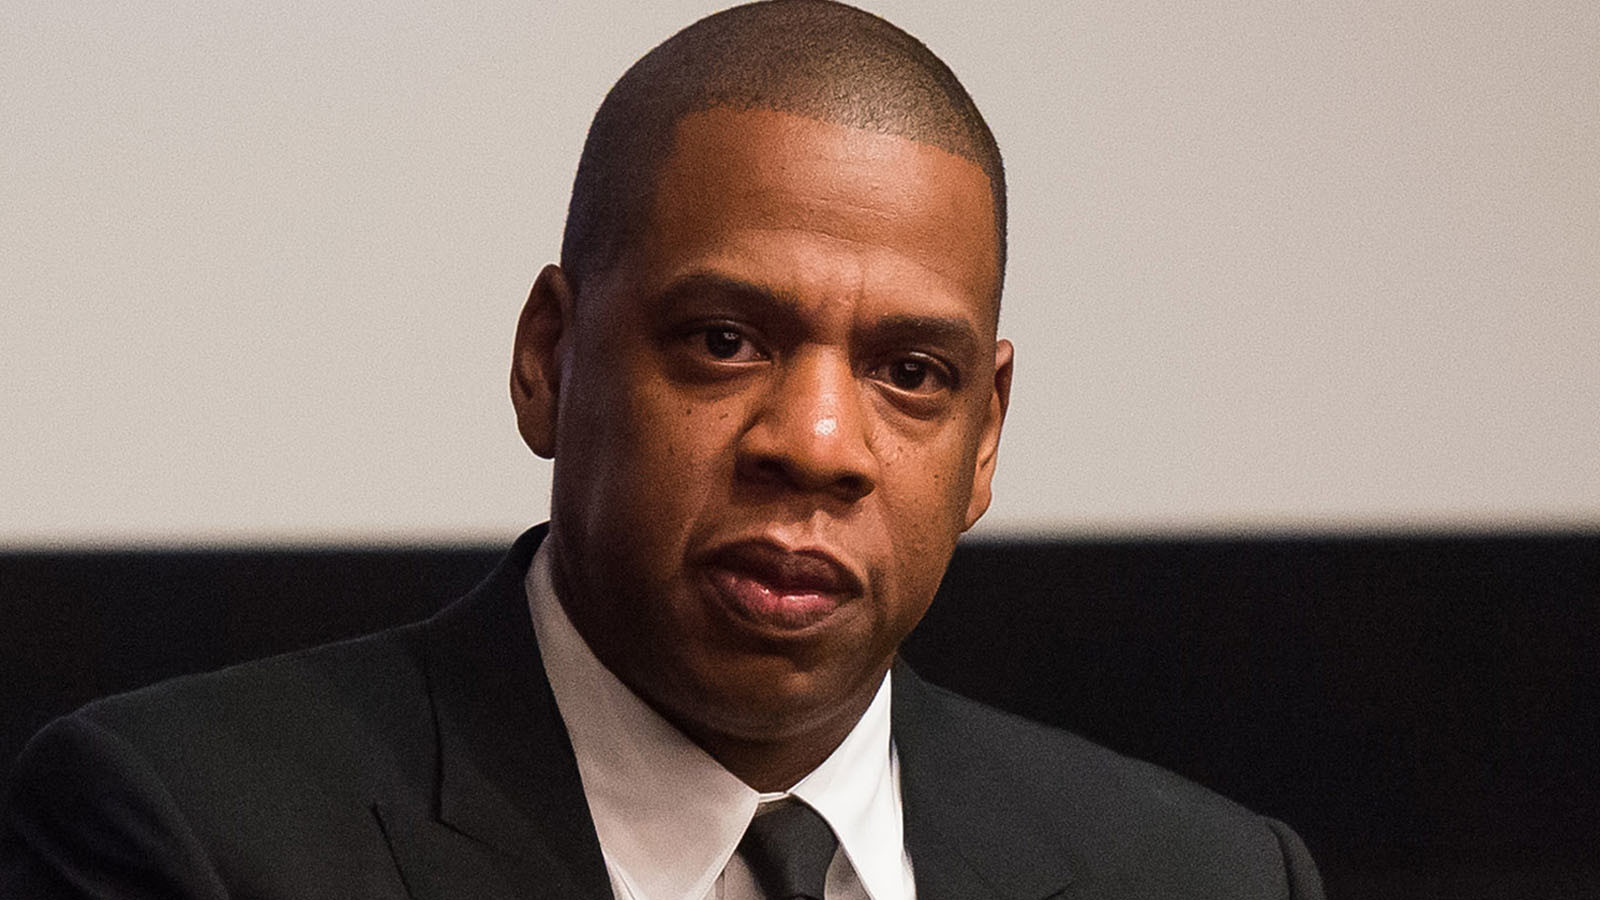 JAY-Z  Says Colin Kaepernick's Protest 'It's Not About the Flag, It's About Justice'